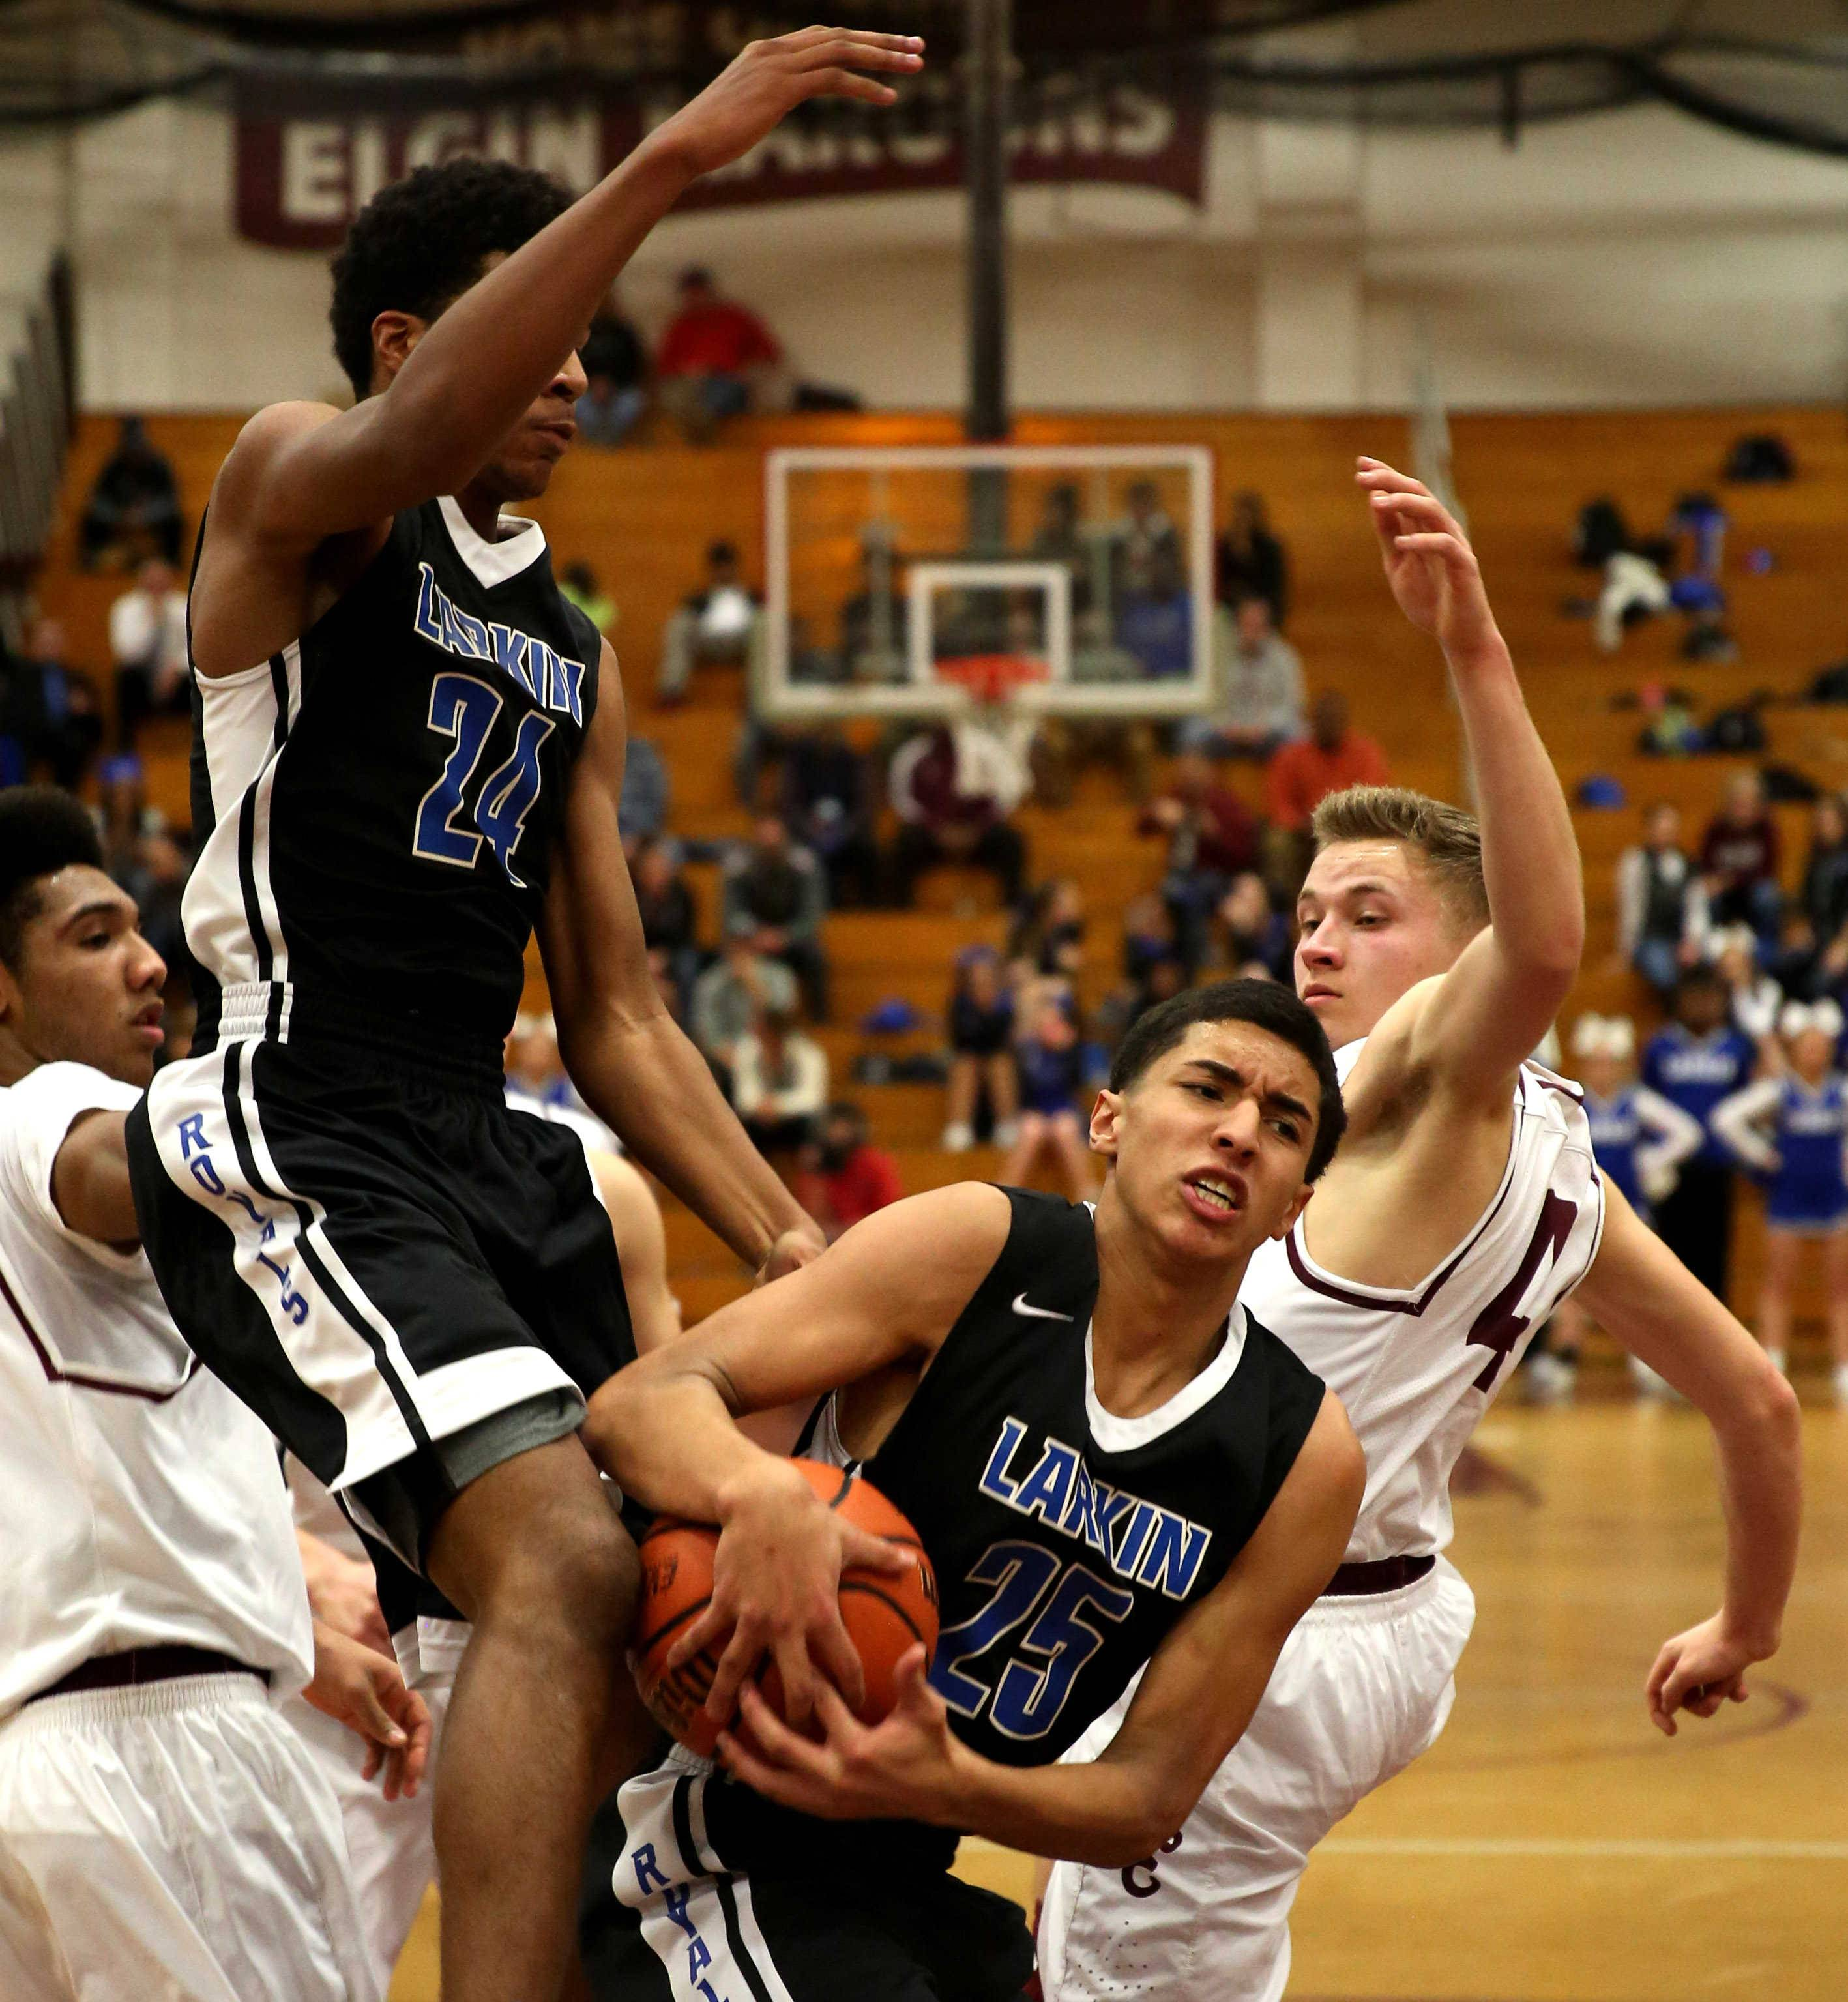 Larkin's Victor Perez, front, secures a rebound against Elgin during varsity boys basketball at Chesbrough Field House on the campus of Elgin High School Friday night.